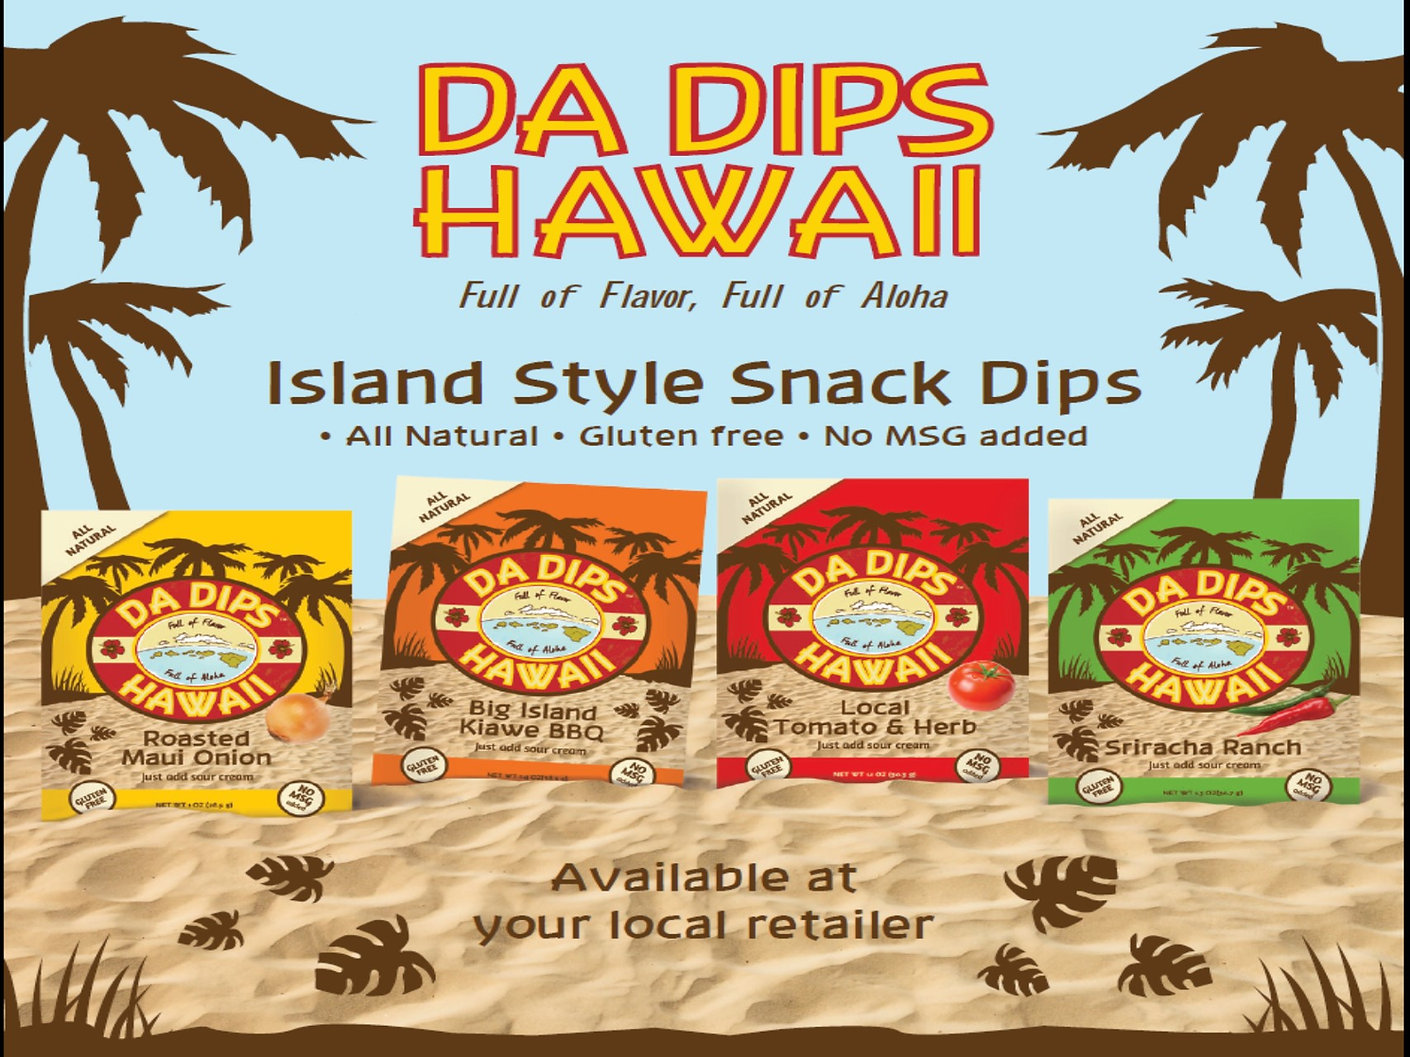 da dips hawaii